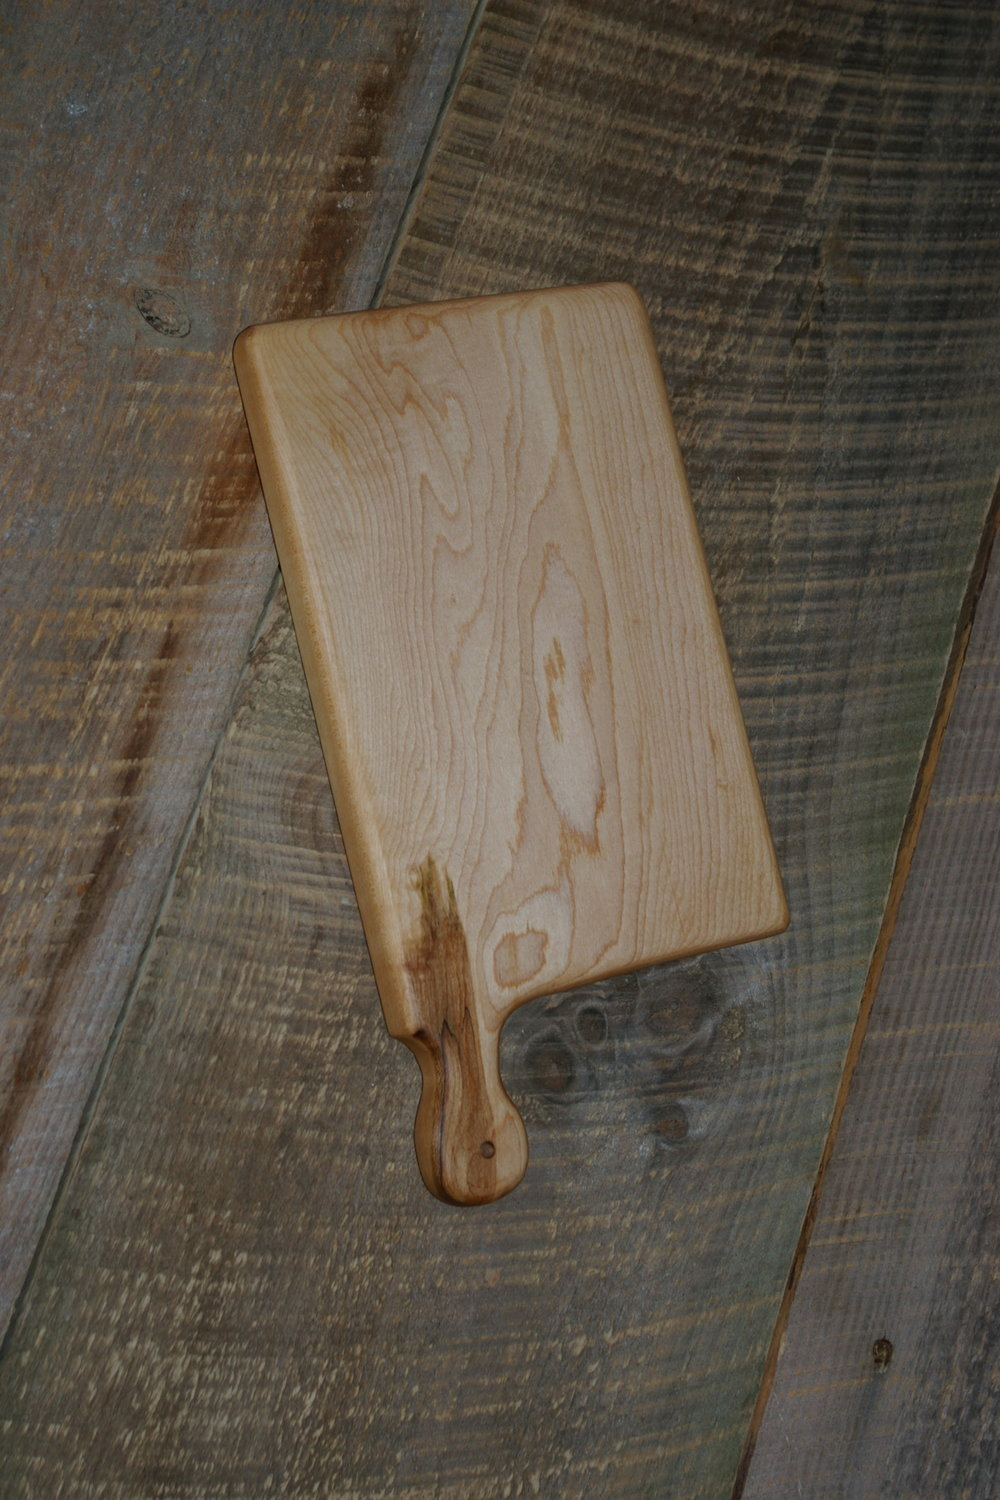 Small Maple Board reg $20 now $15 - #133 Hard maple wood cutting or serving board